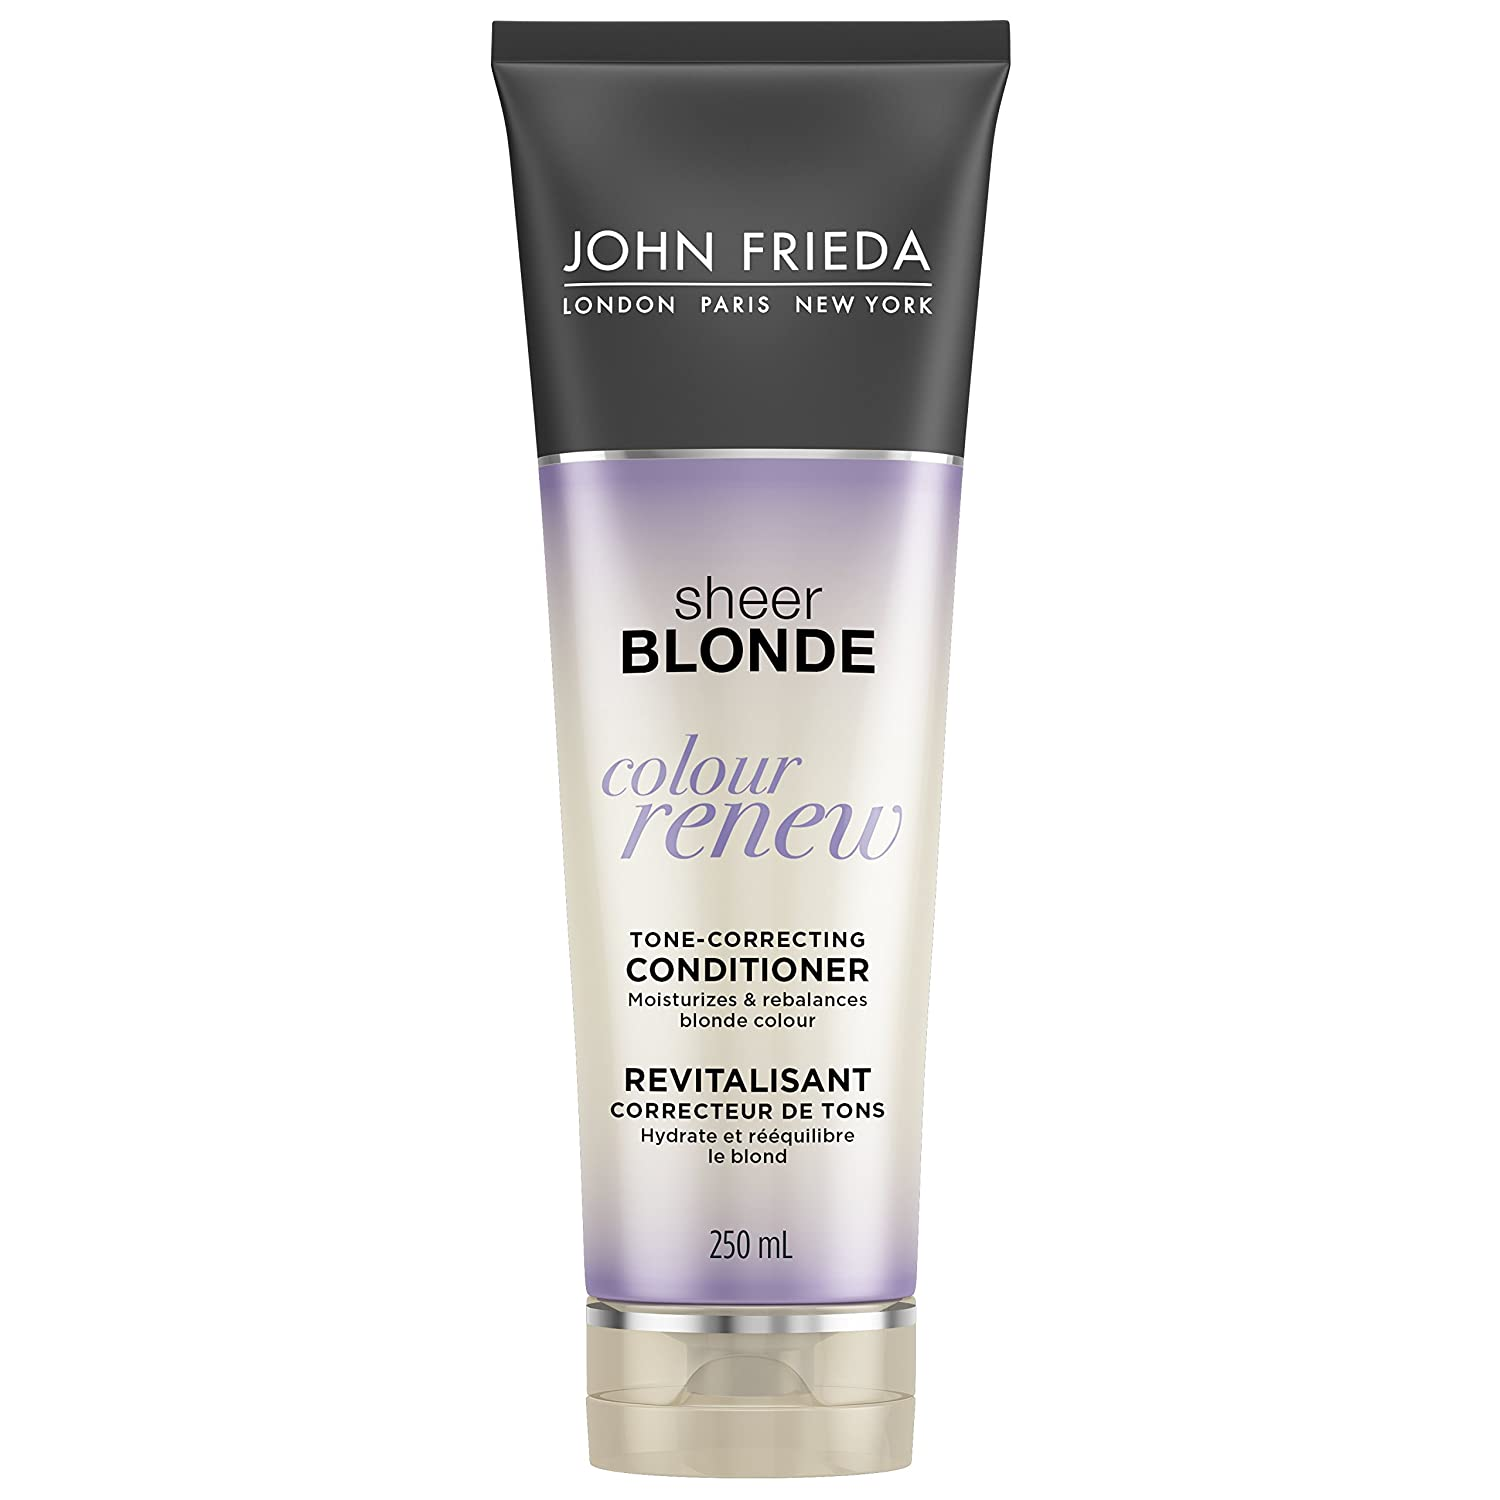 JOHN FRIEDA Sheer Blonde Colour Renew Tone-Correcting Conditioner Mini, 45 ml Kao